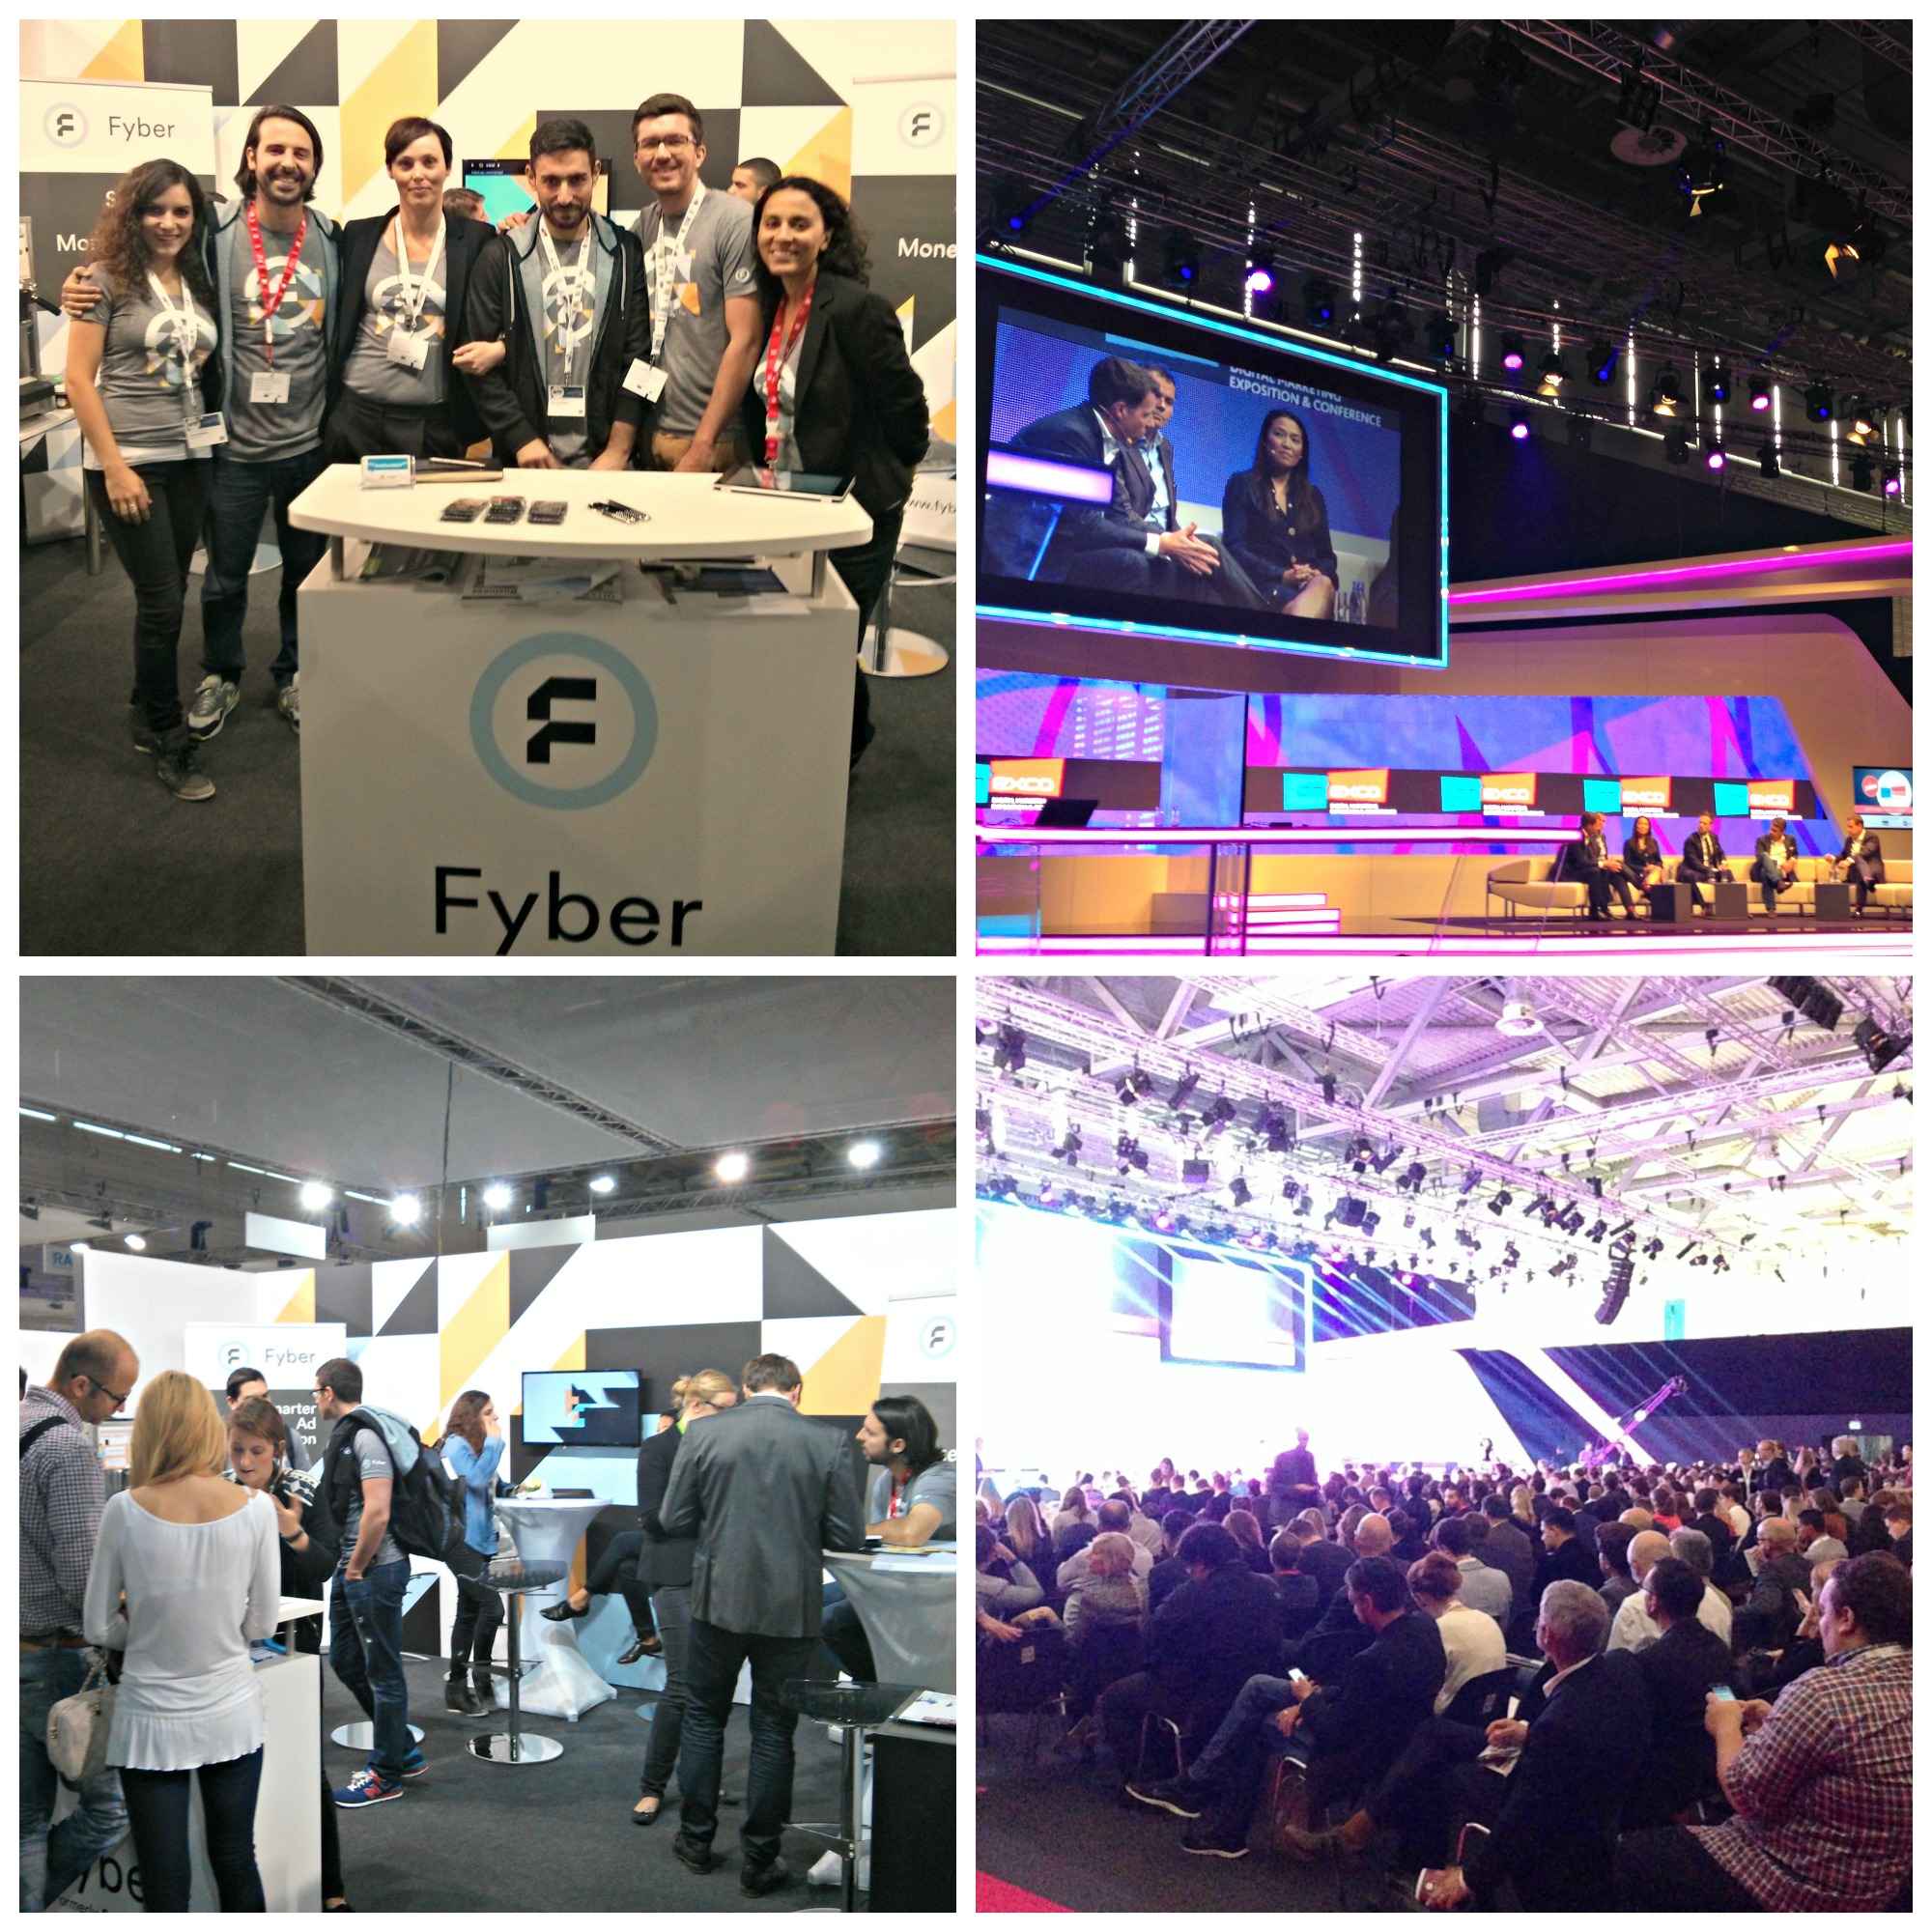 Fyber @ dmexco 2014